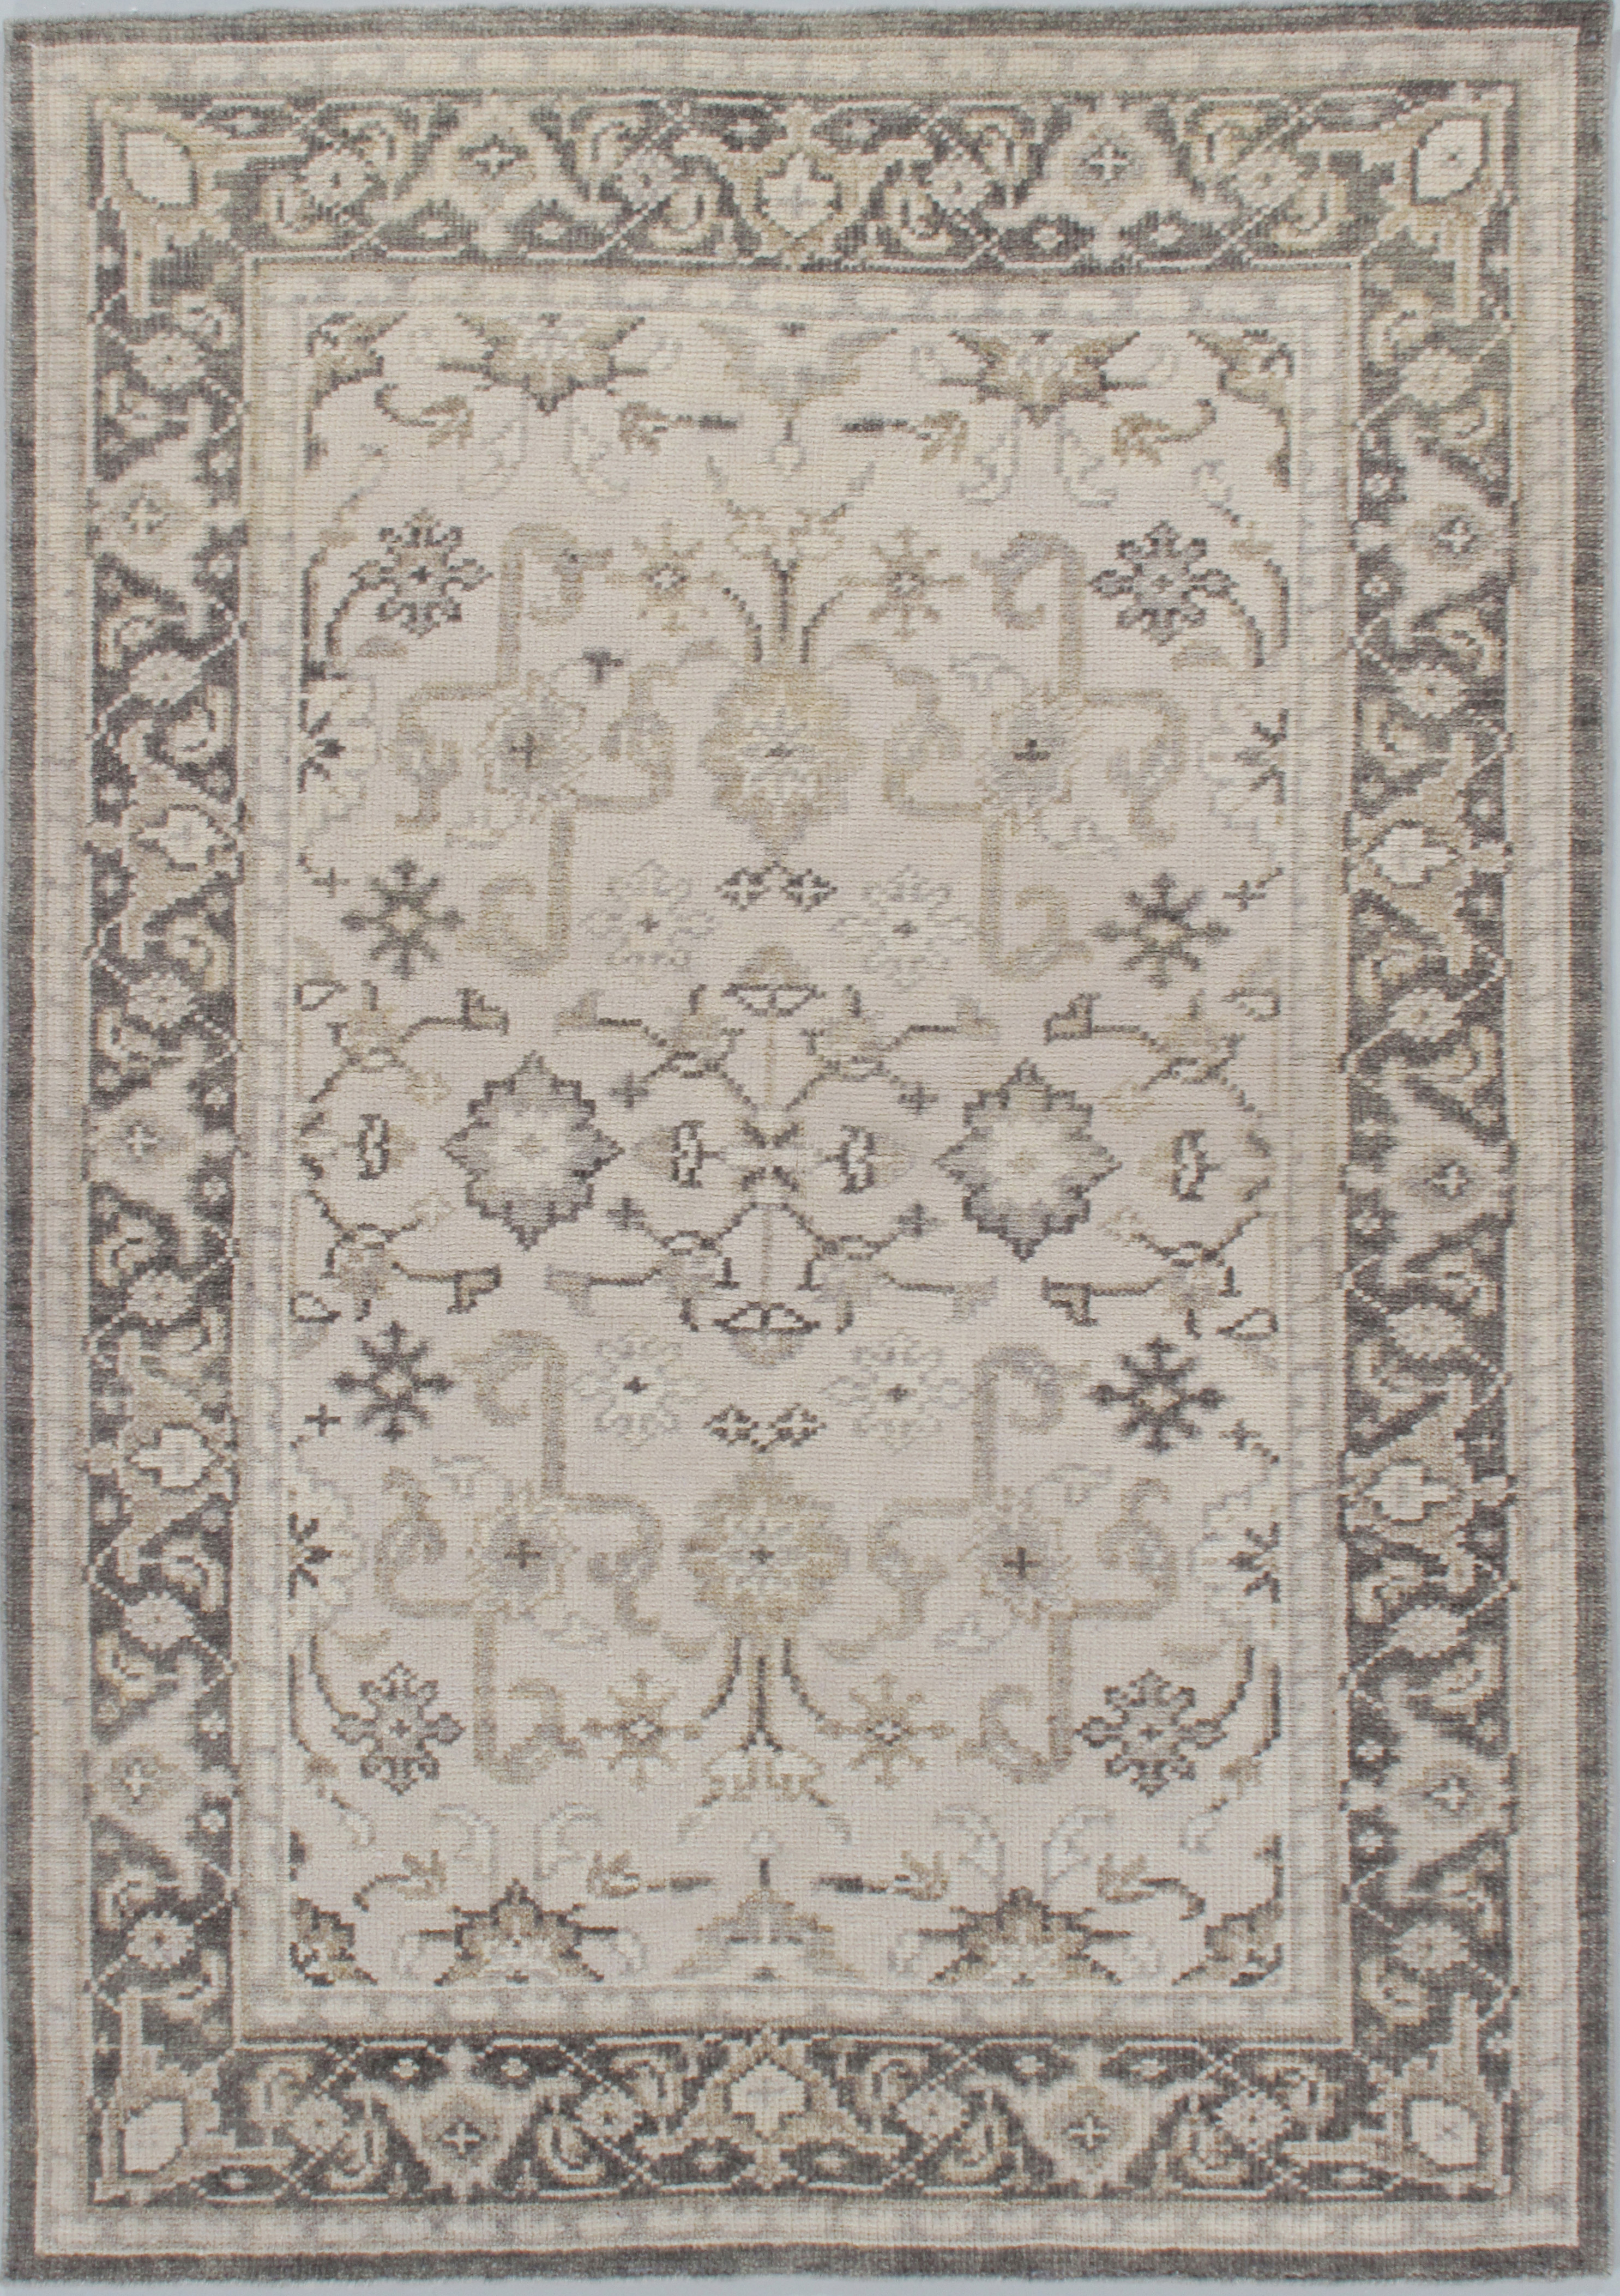 Classic Tabriz Style Hand Woven Rug